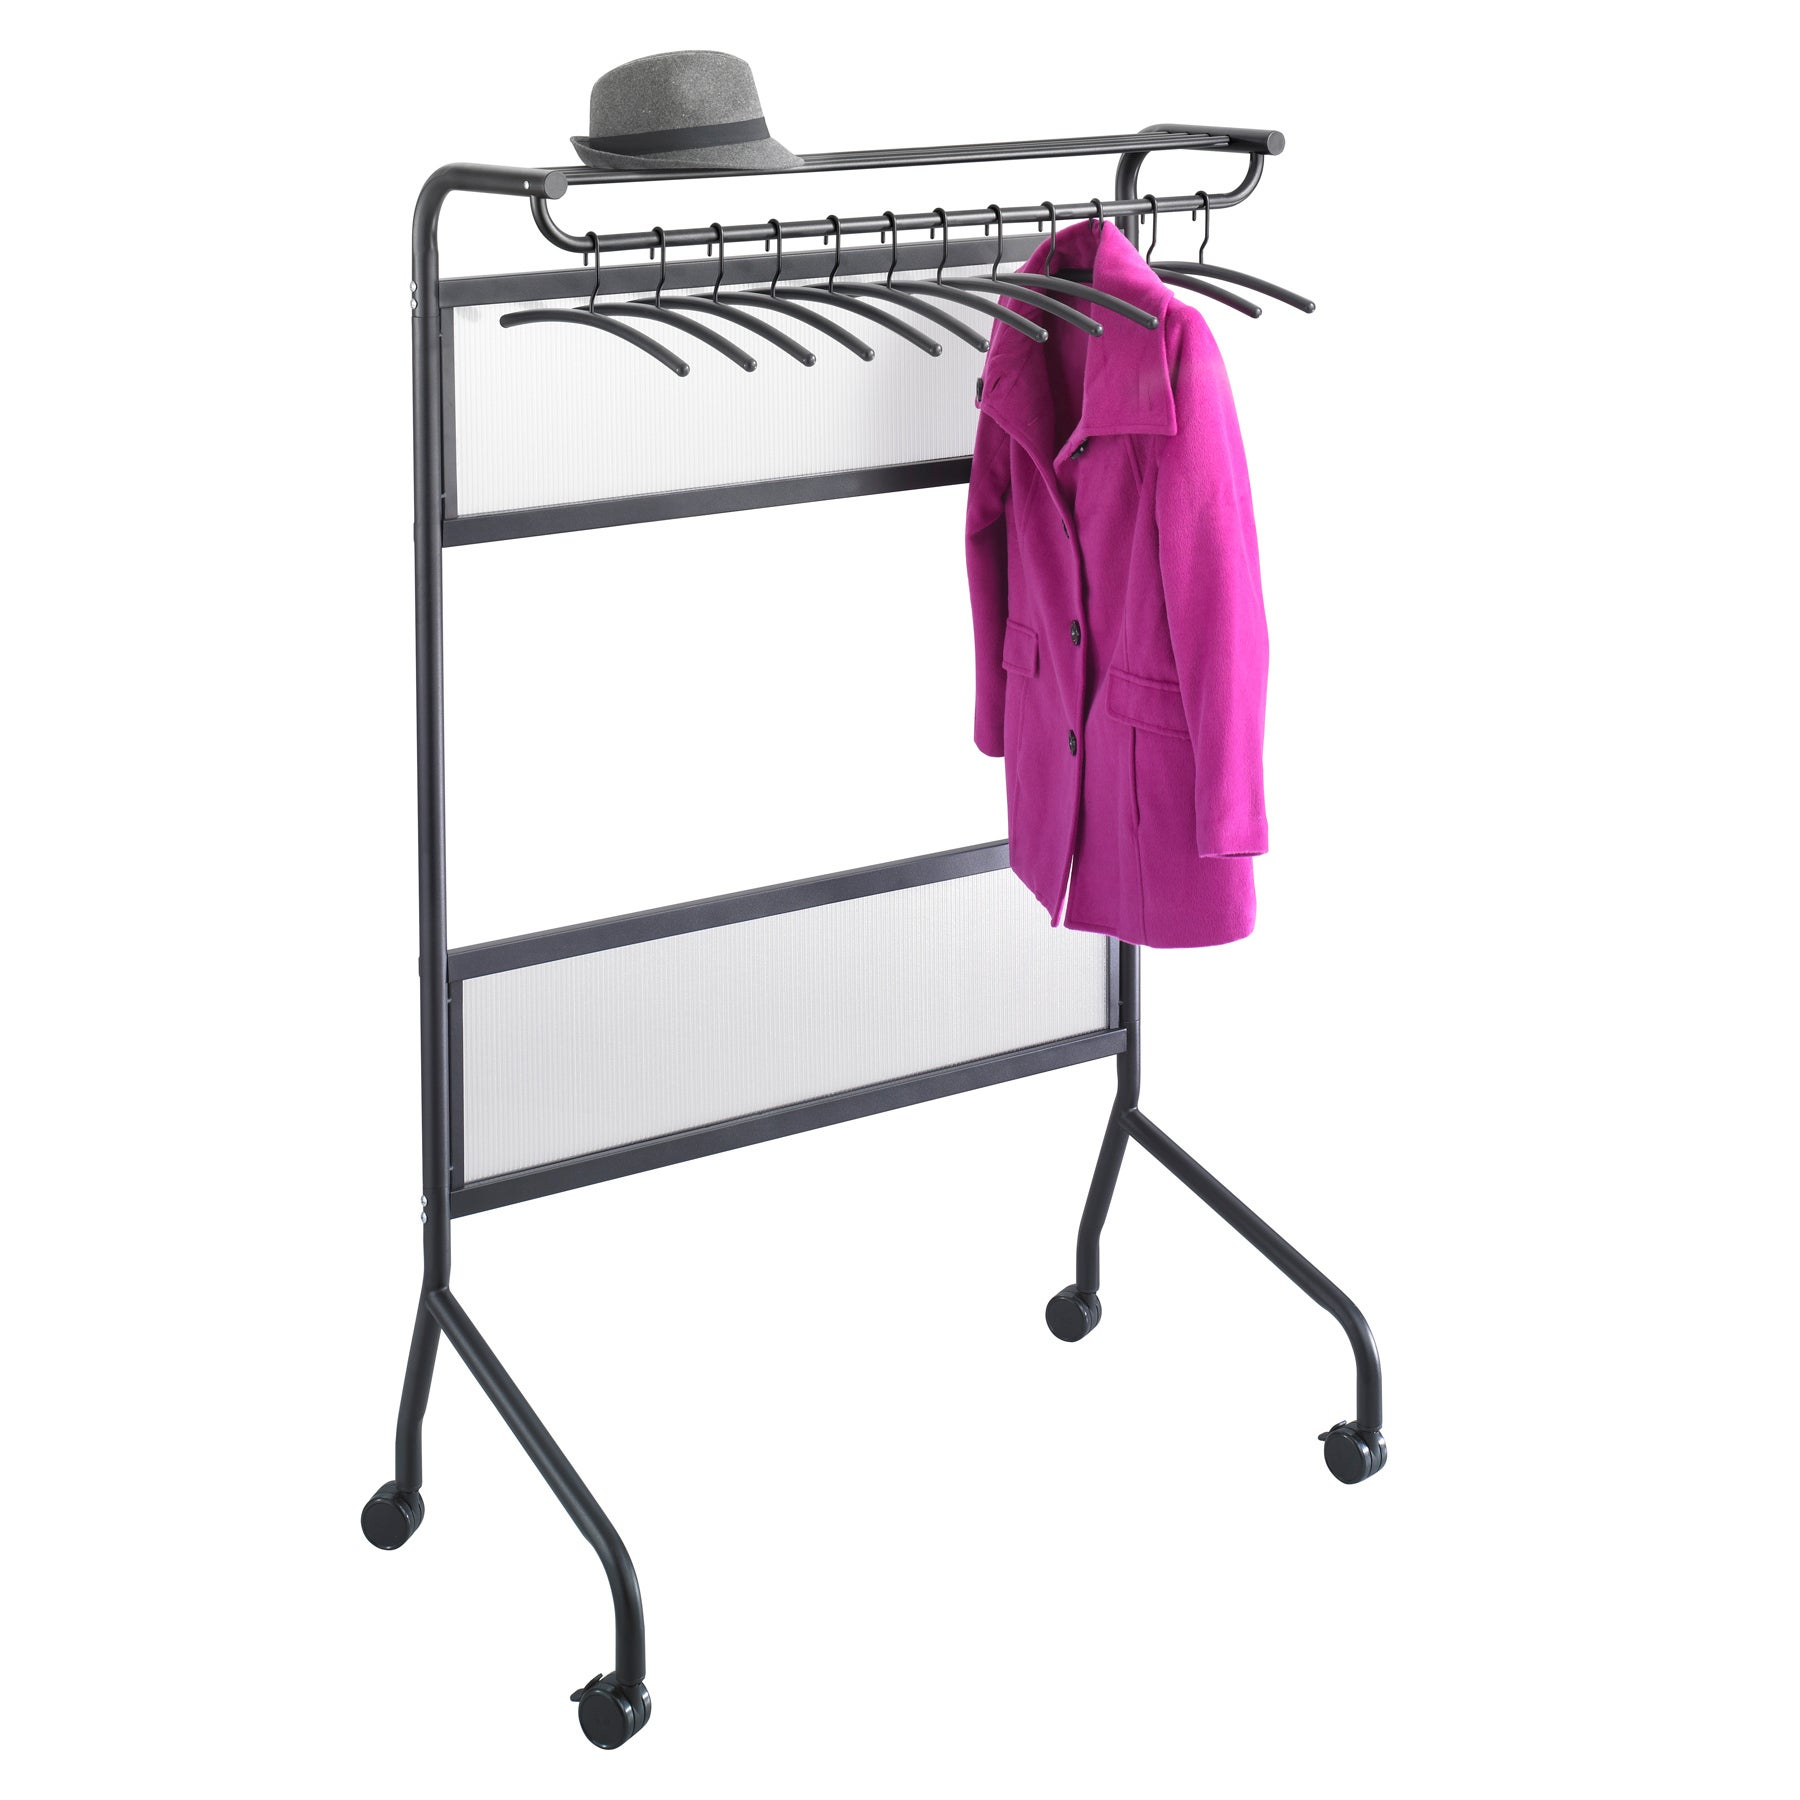 Shop Safco Impromptu Garment Rack - On Sale - Free Shipping Today -  Overstock.com - 8022429